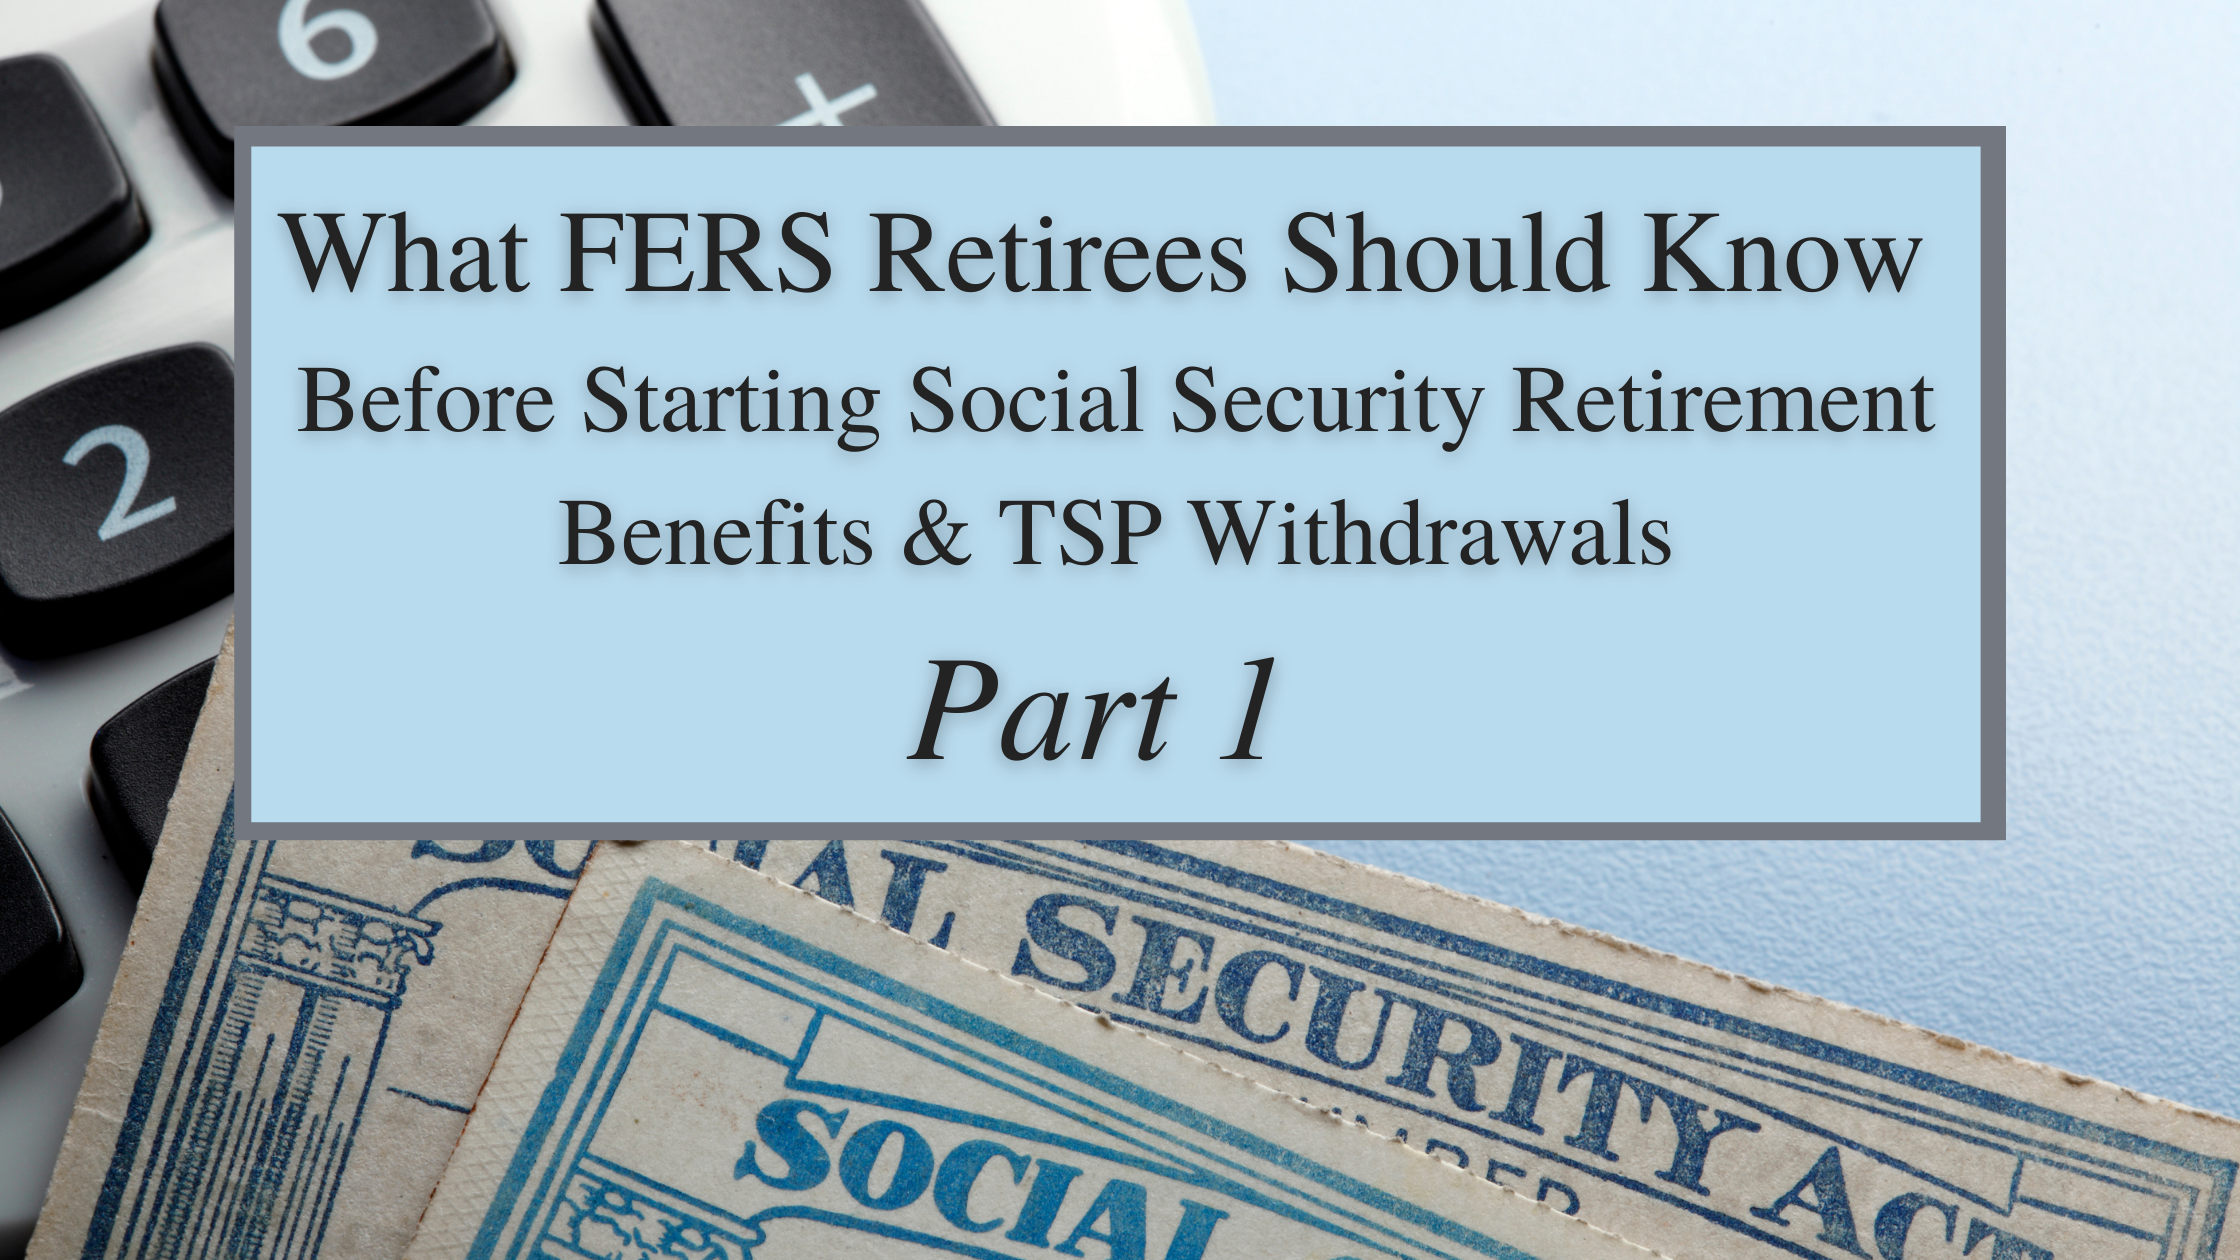 When Should You Apply for Social Security Retirement Benefits?